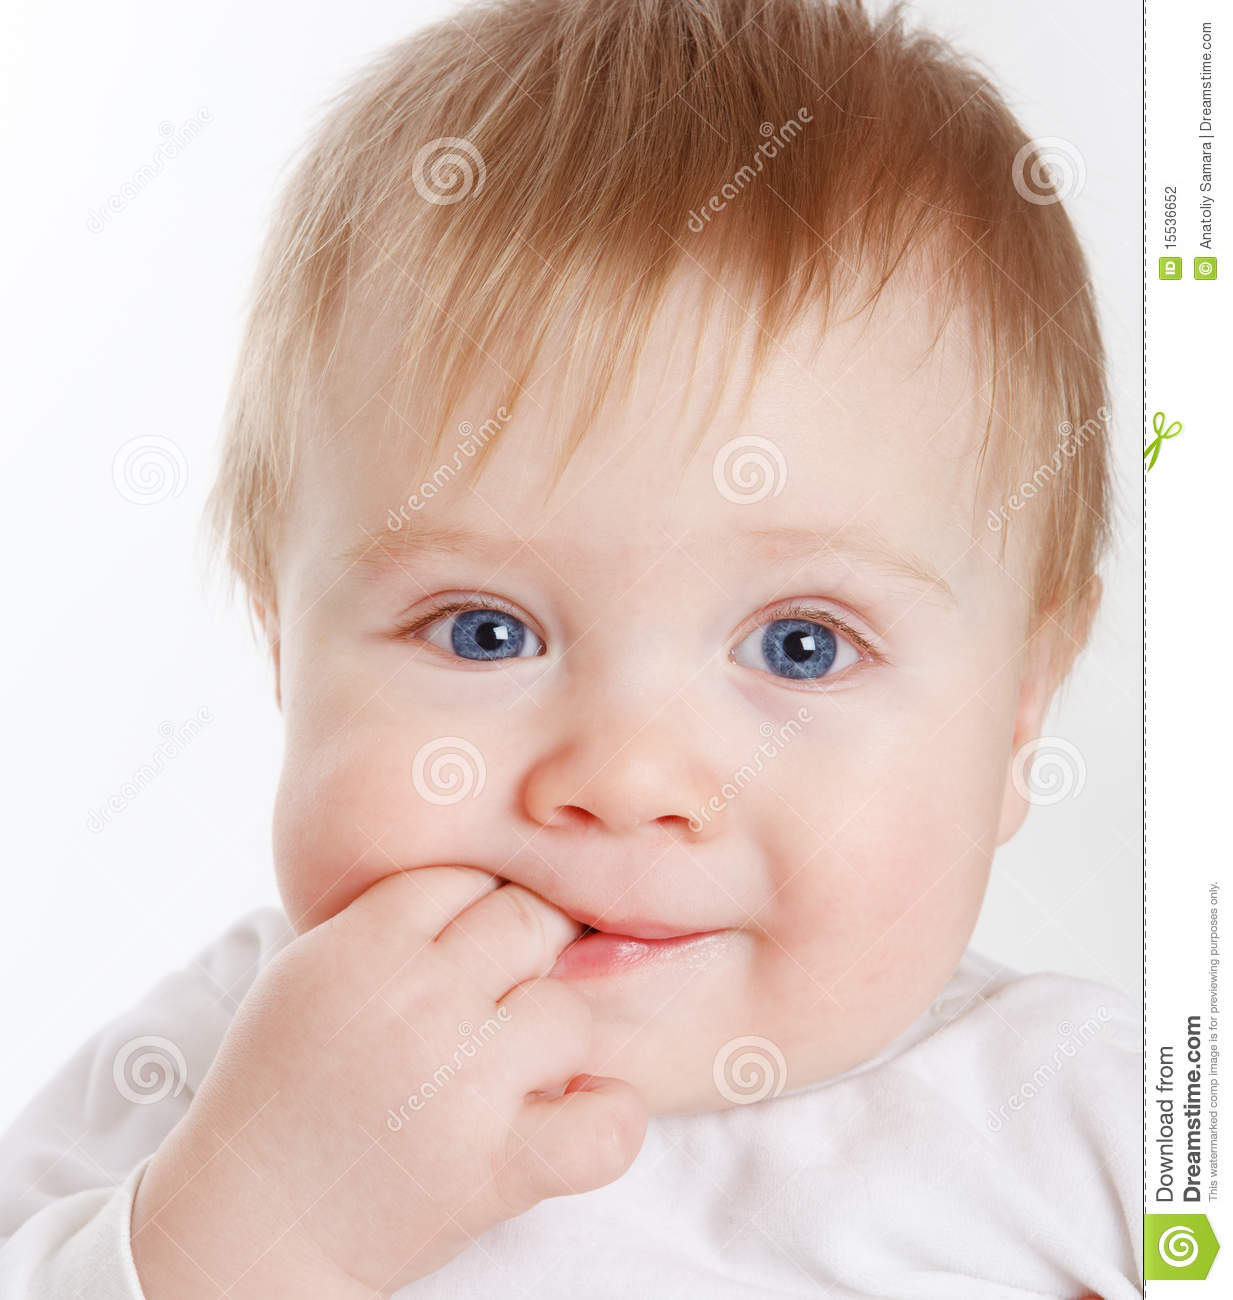 Baby with fingers in mouth